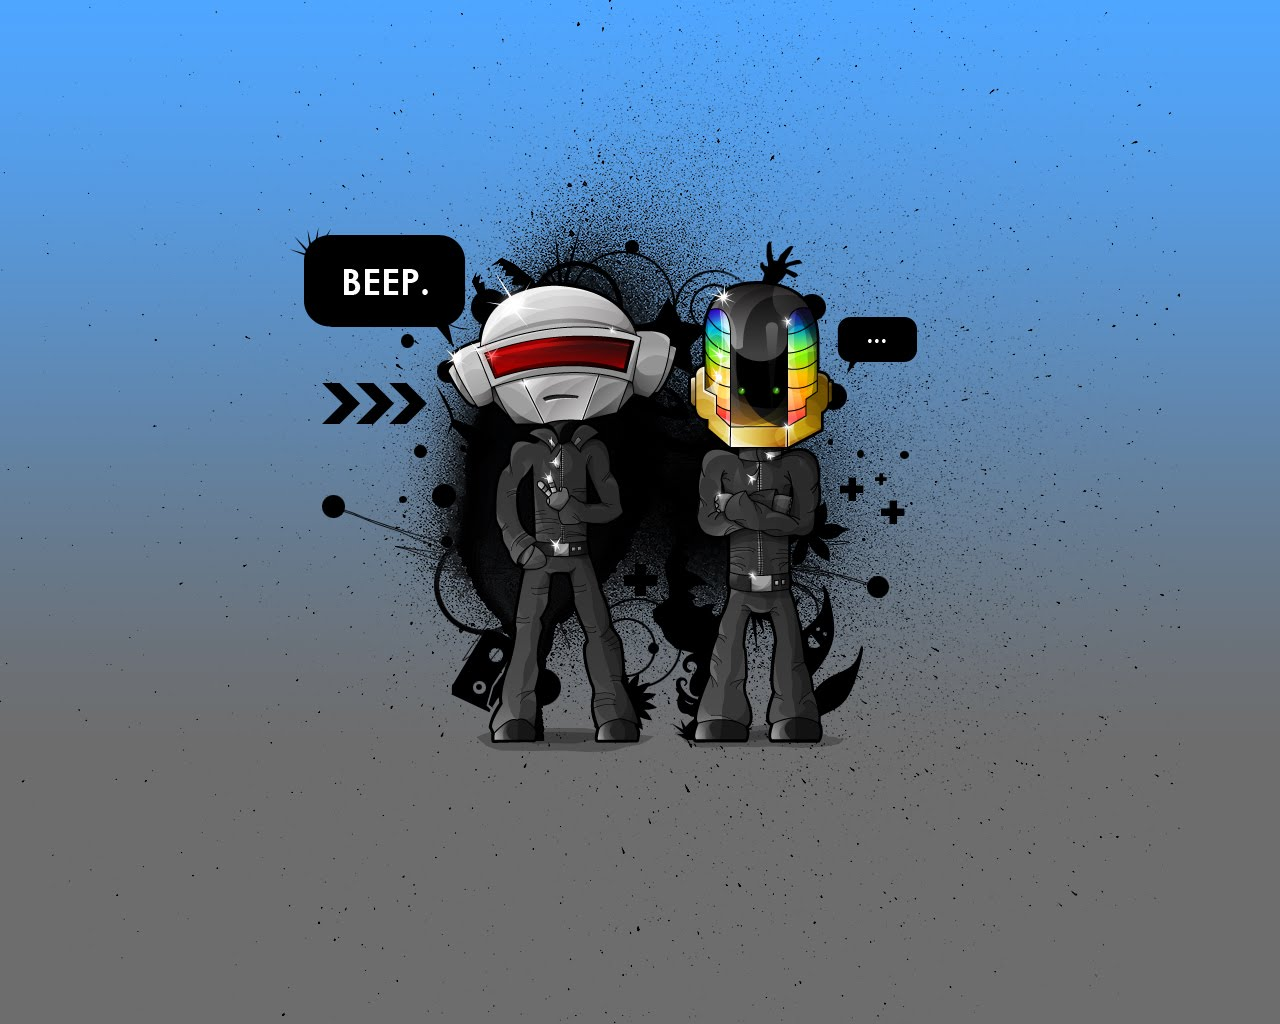 Imagenes De Daft Punk, HQ Definition Daft Punk Wallpapers For Free 1280x1024